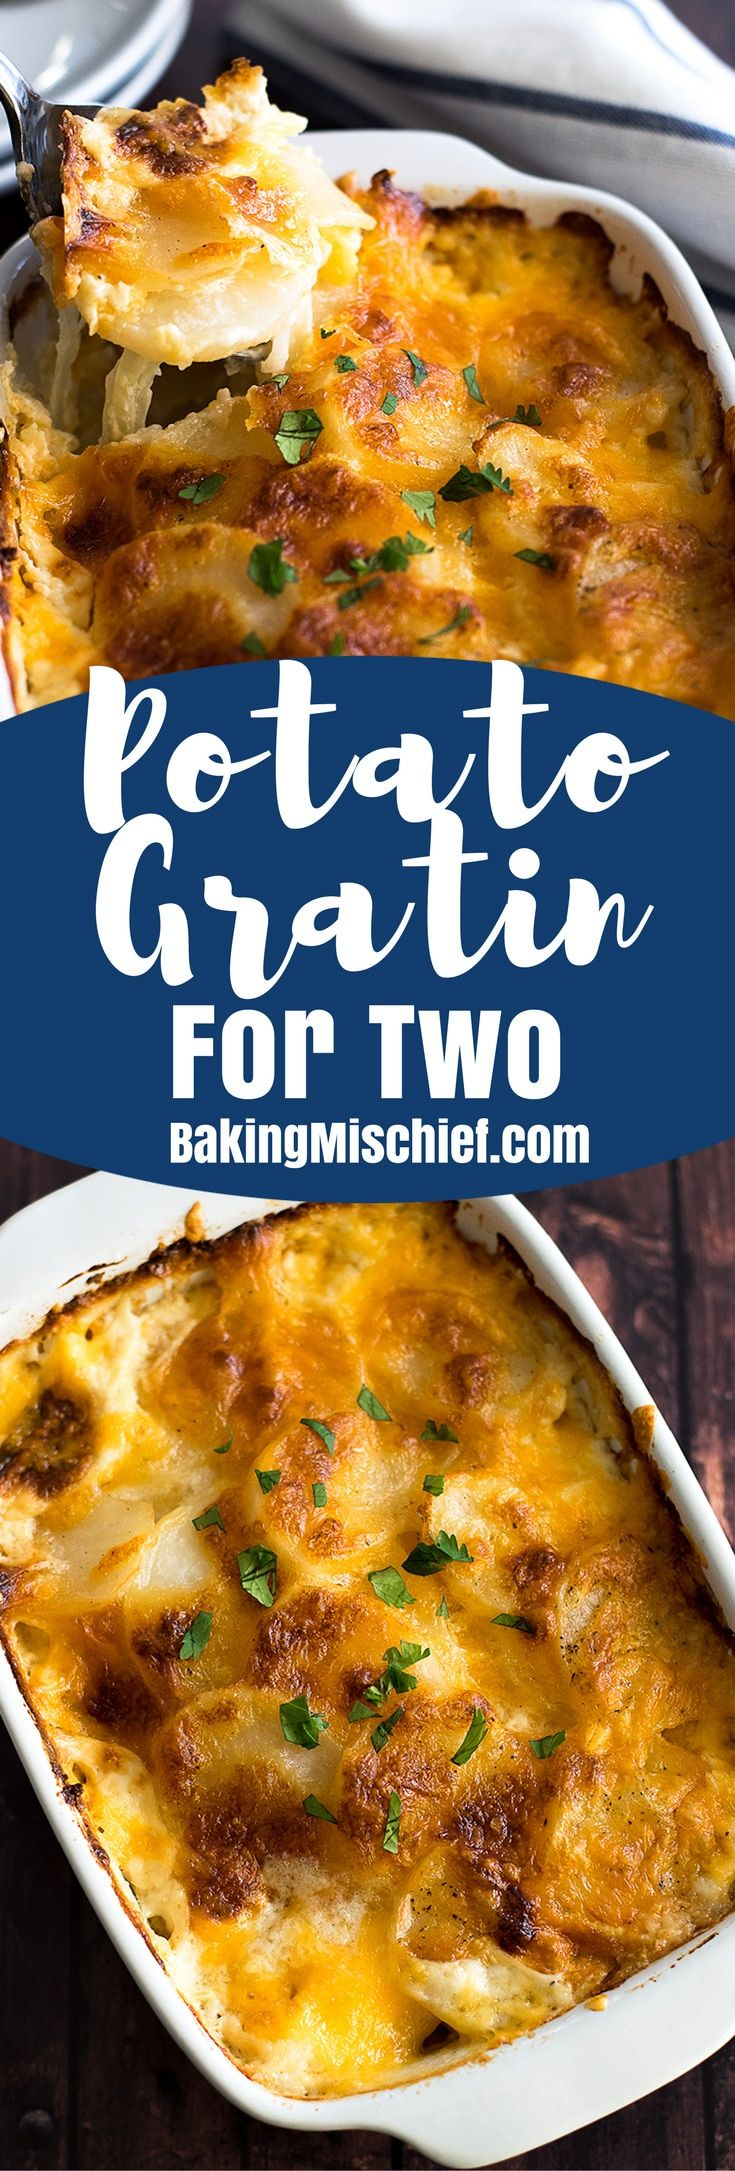 Creamy cheesy Potato Gratin for Two is simple to make and a perfect delicious meal for two.